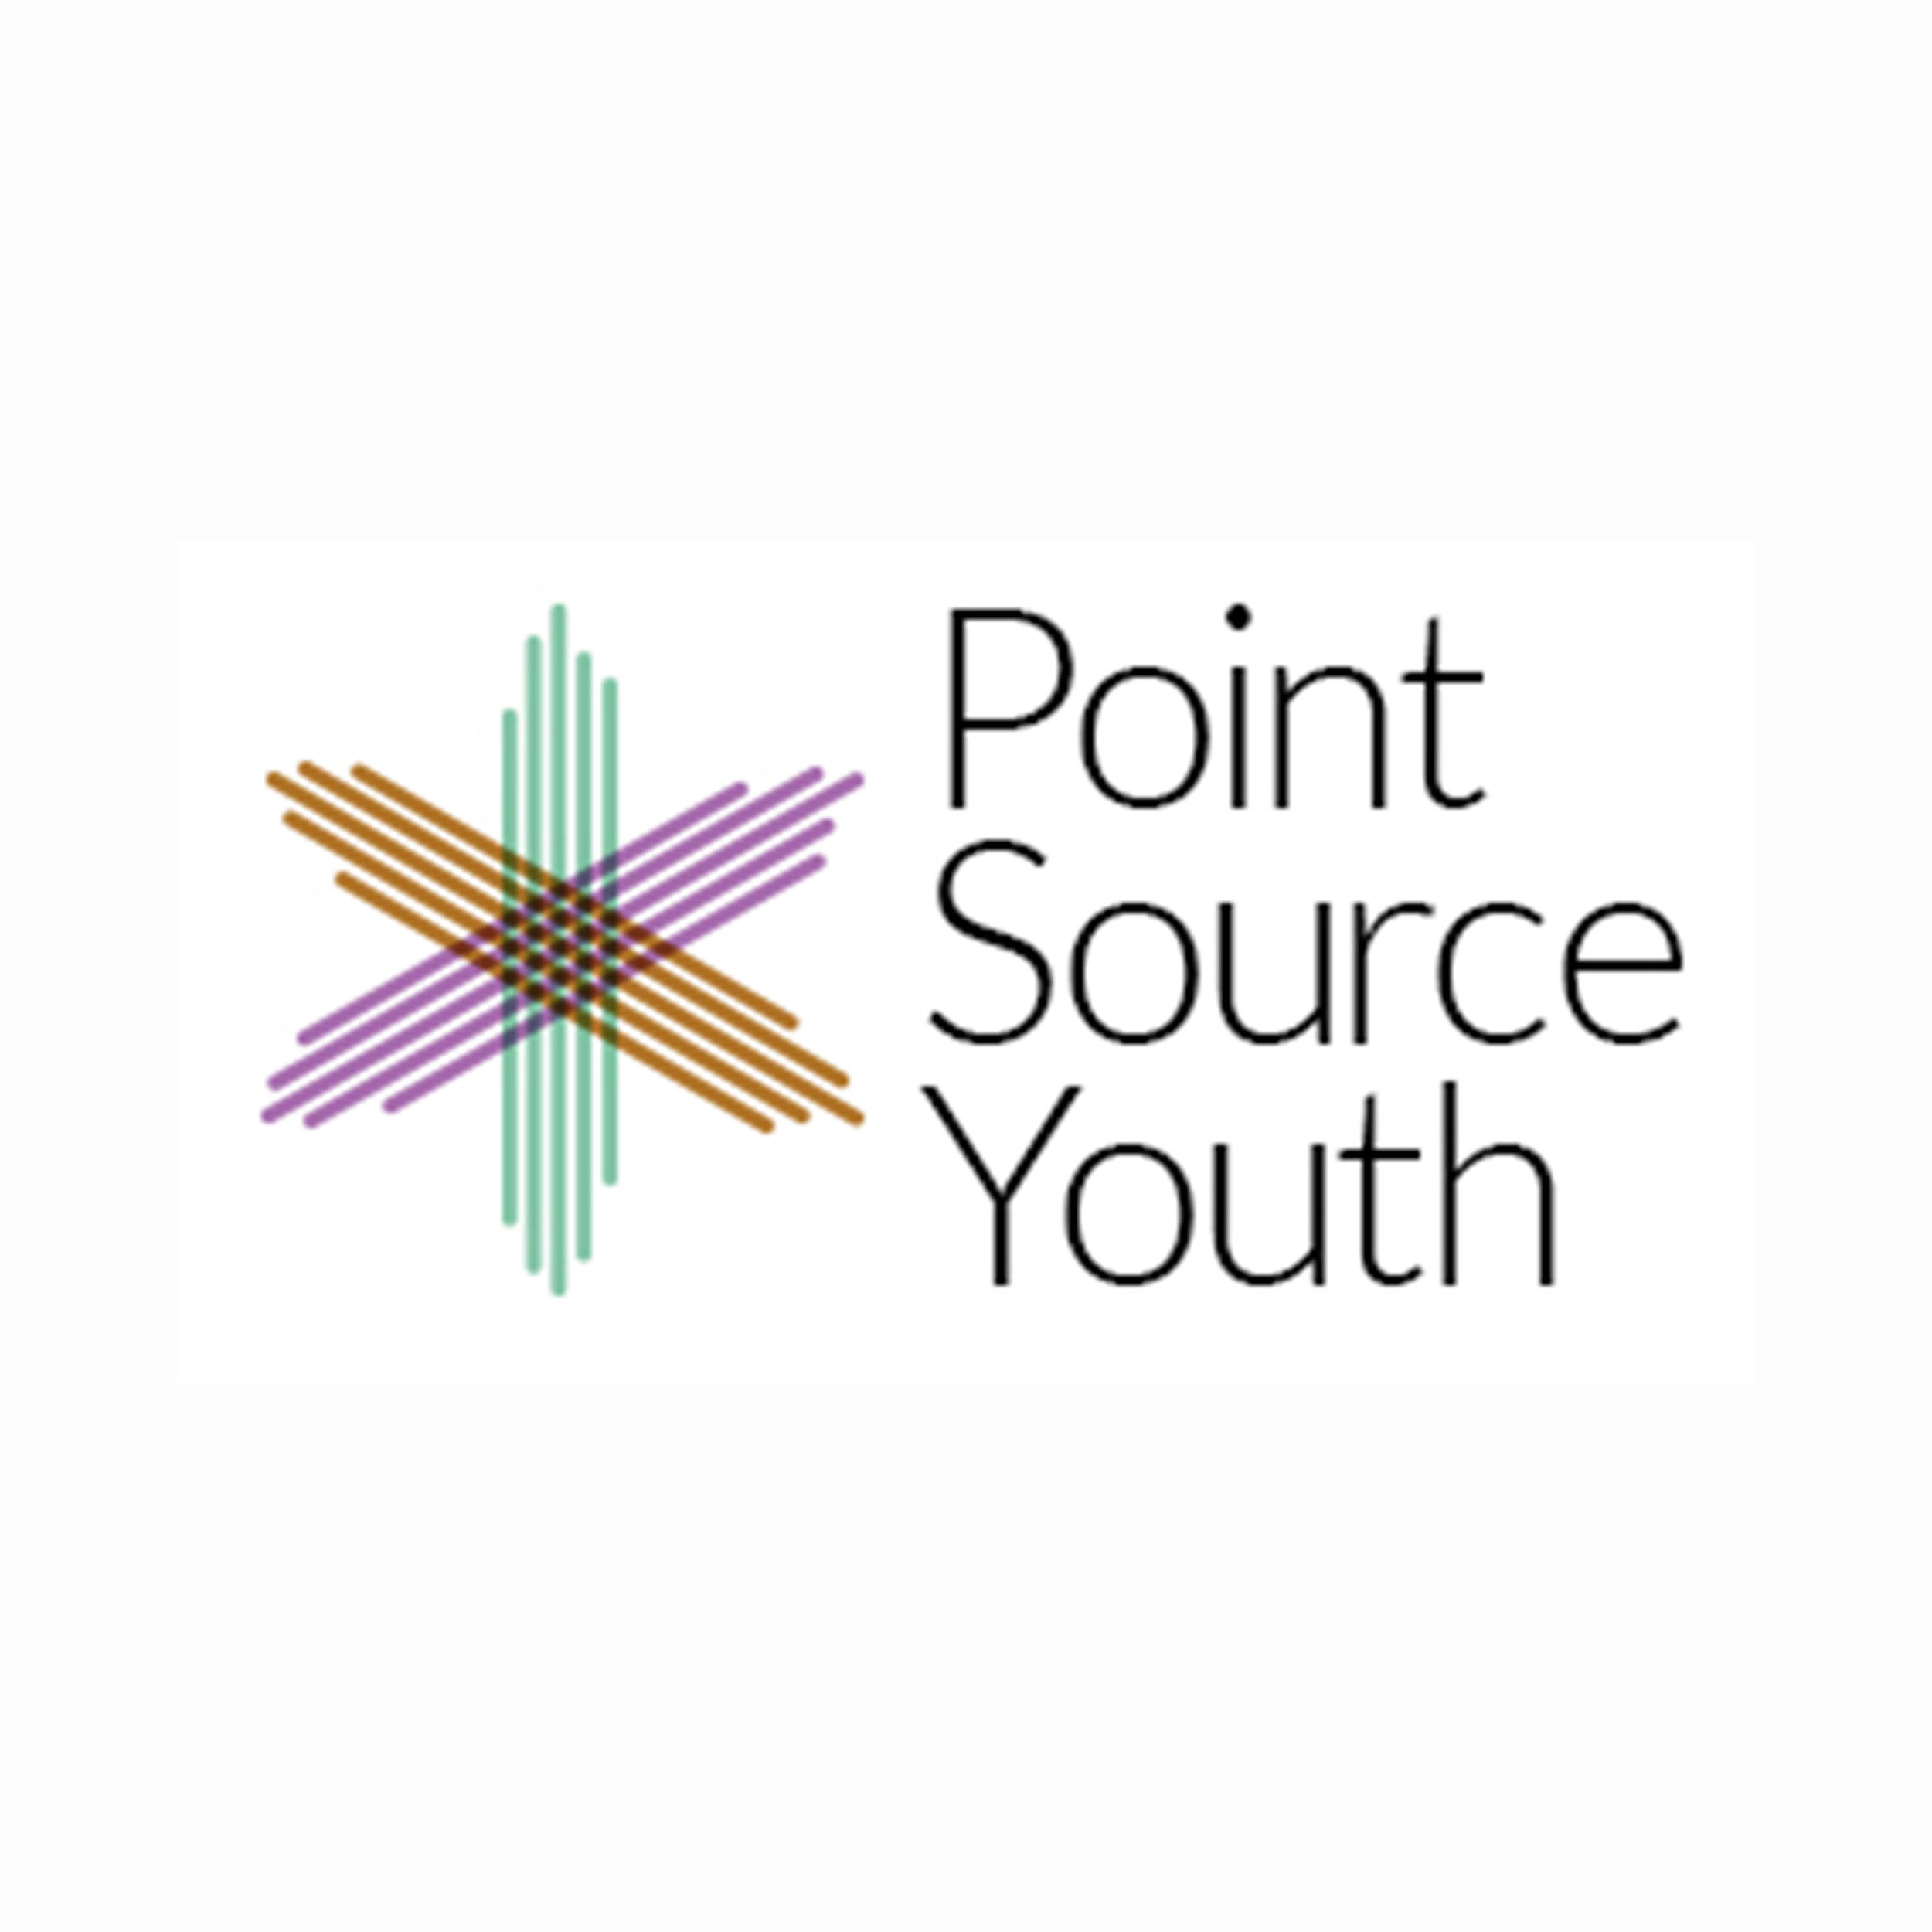 PointSourceYouth_background.jpg